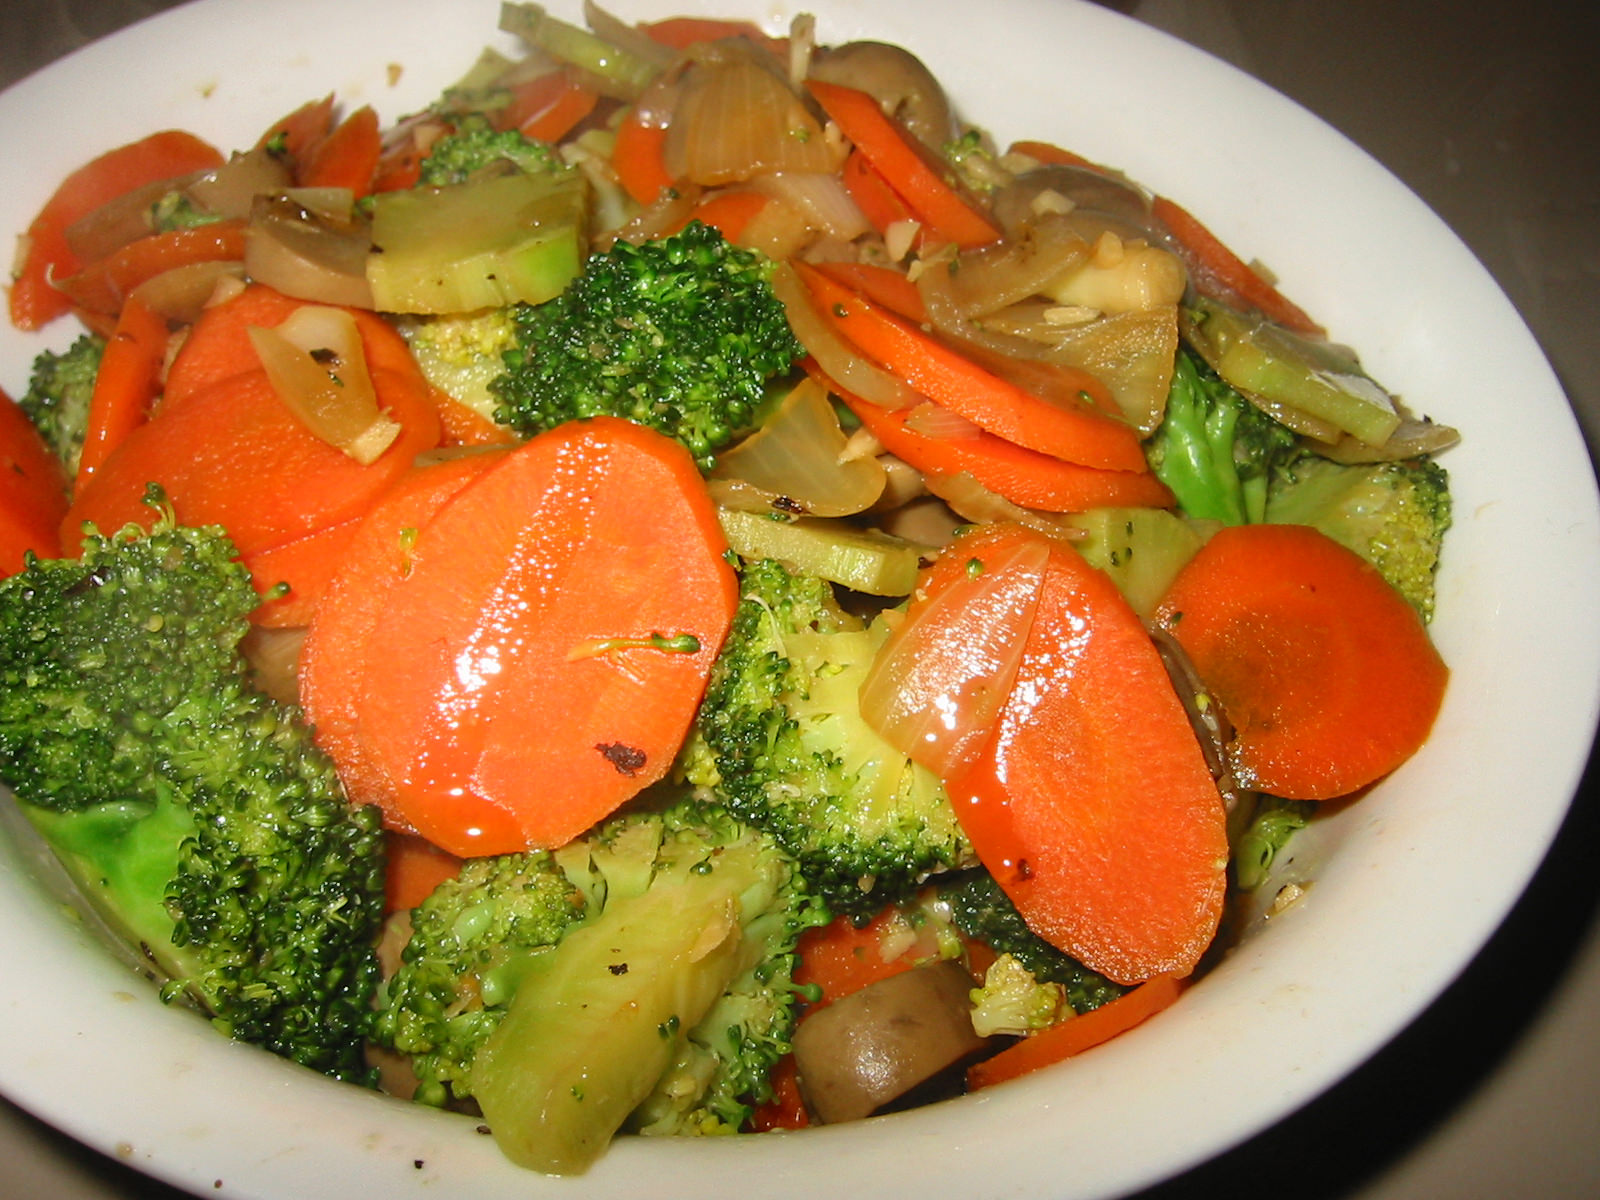 Stir fried broccoli, carrot and champignon